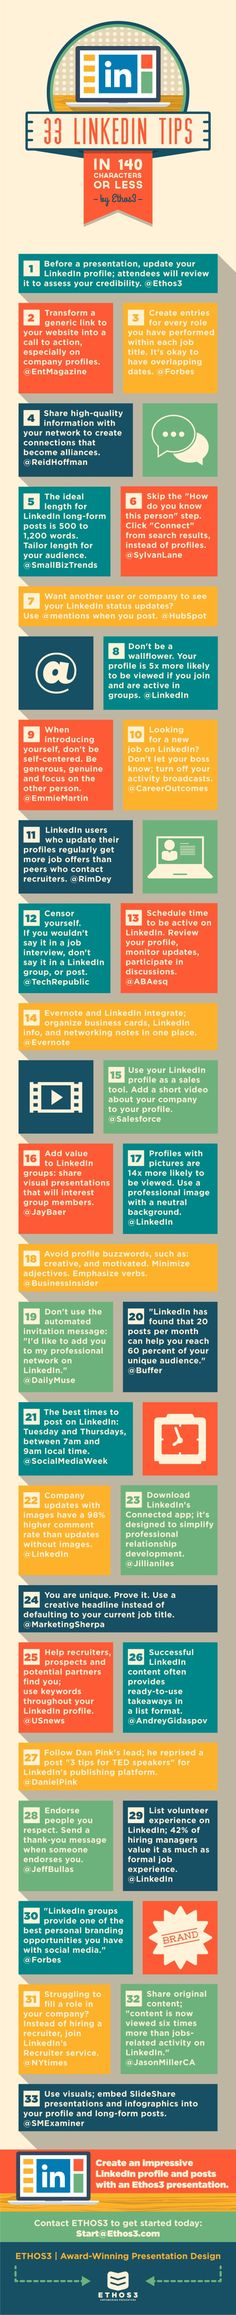 33 LinkedIn Tips, in 140 characters or less - #infographic #LinkedIn #socialmedia